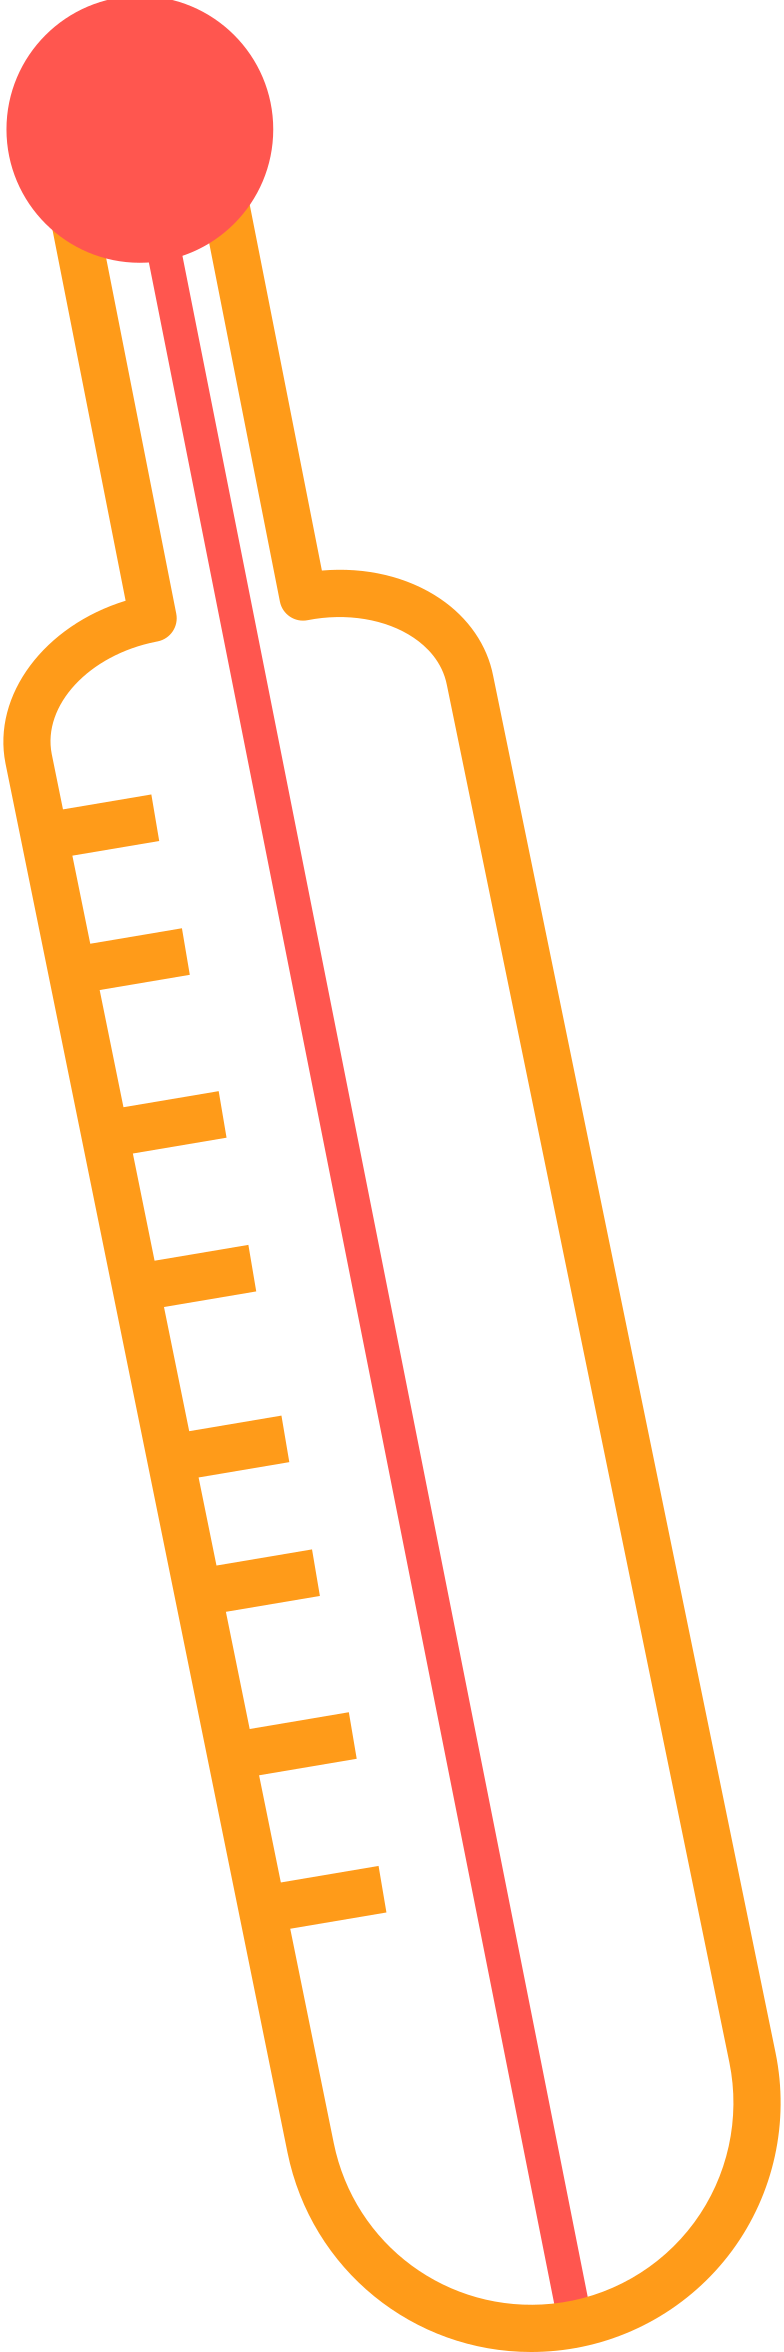 thermometer Clipart illustration in PNG, SVG